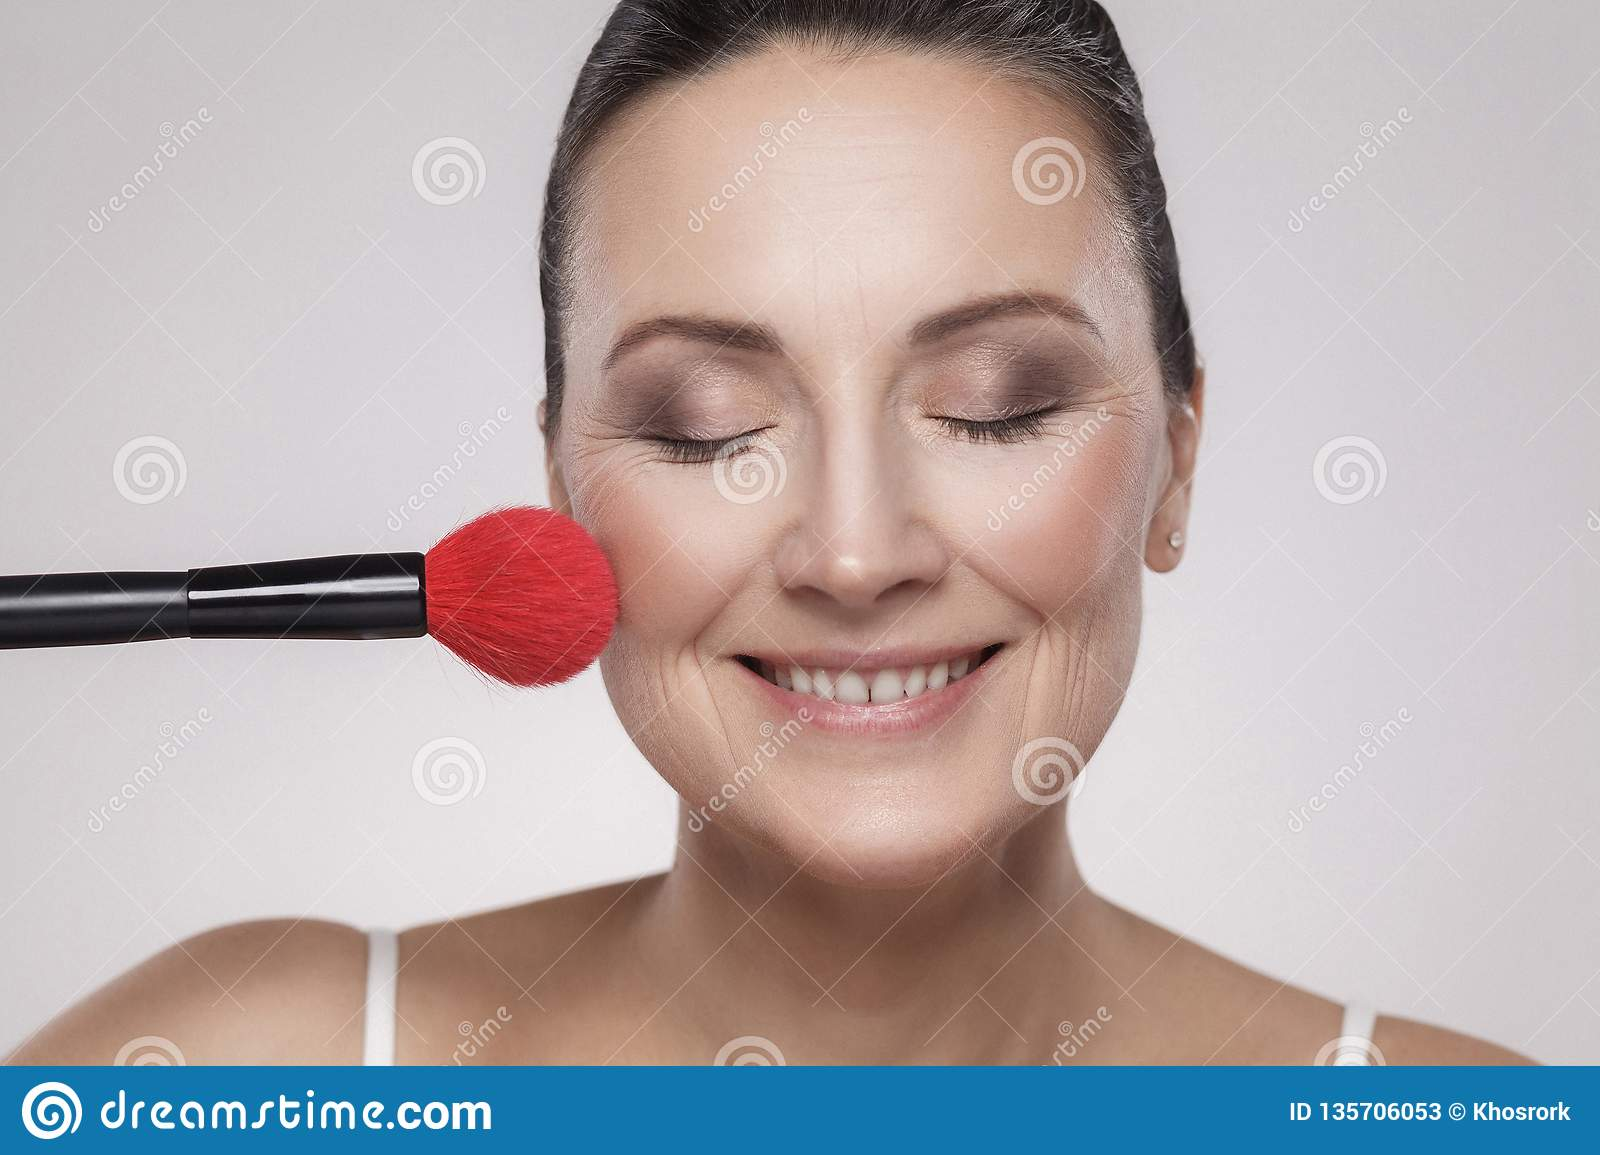 Closeup portrait of a attractive middle aged woman with perfect skin applying makeup with a red